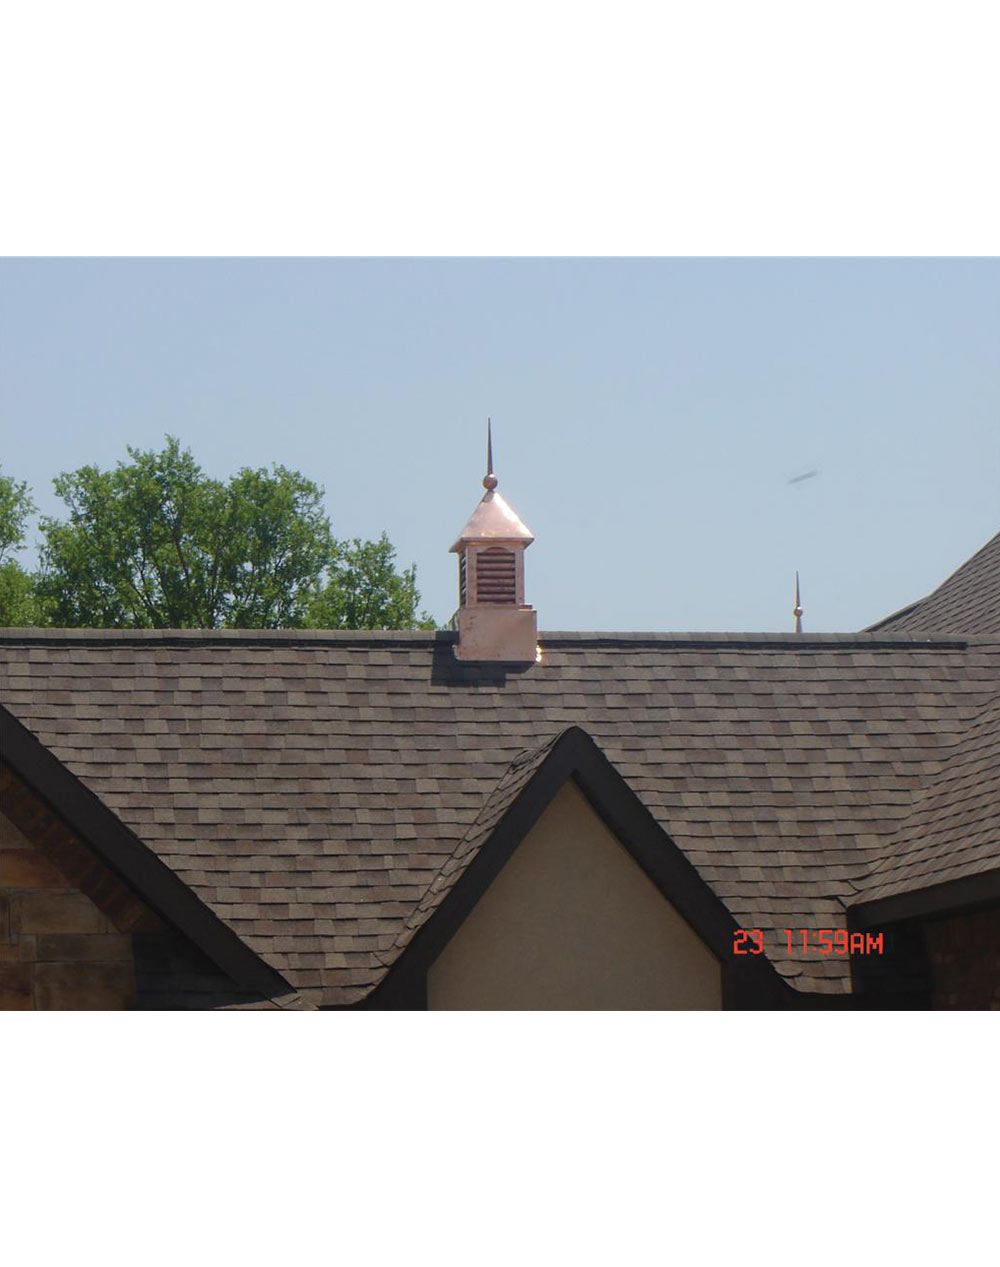 Decorative copper roofing cupola ii home of copper art for House cupola